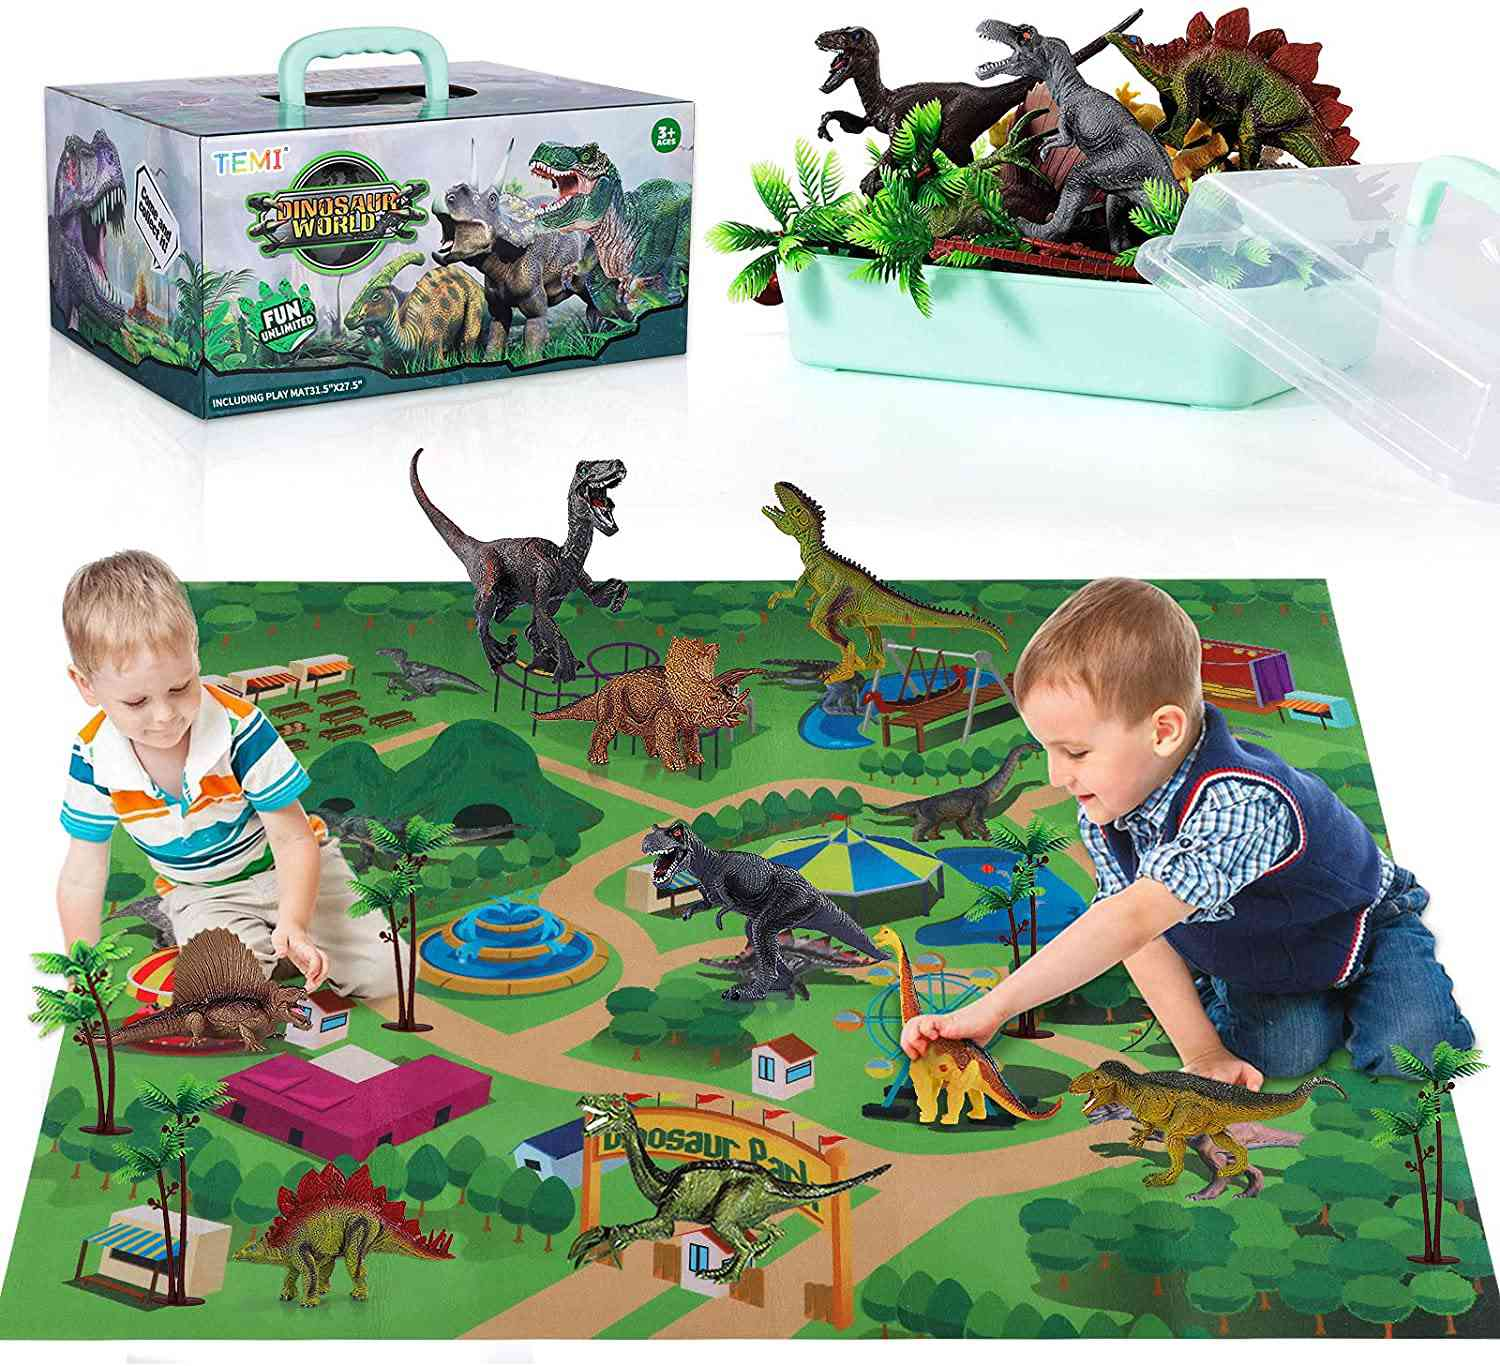 Temi Dinosaur Toy Figure with Activity Play Mat & Trees